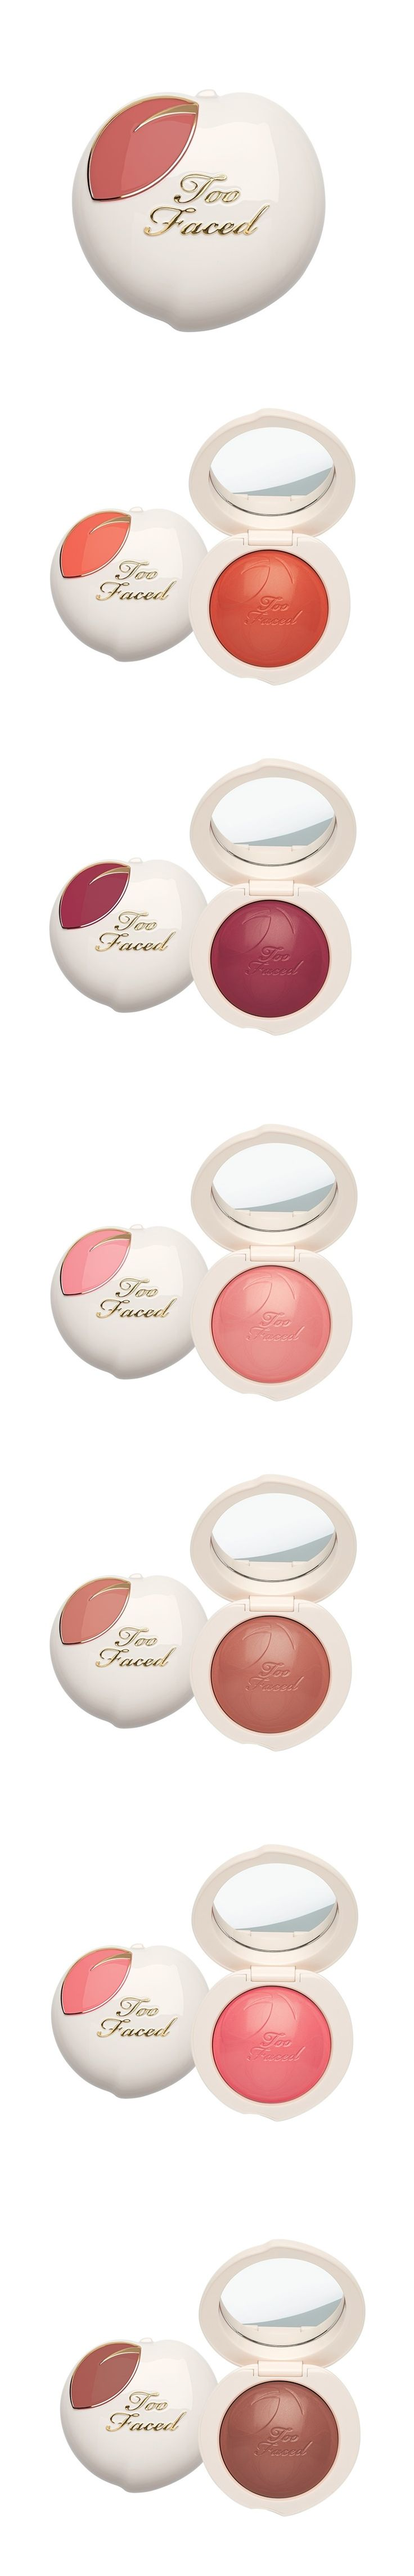 Too Faced Peach My Cheeks Blush